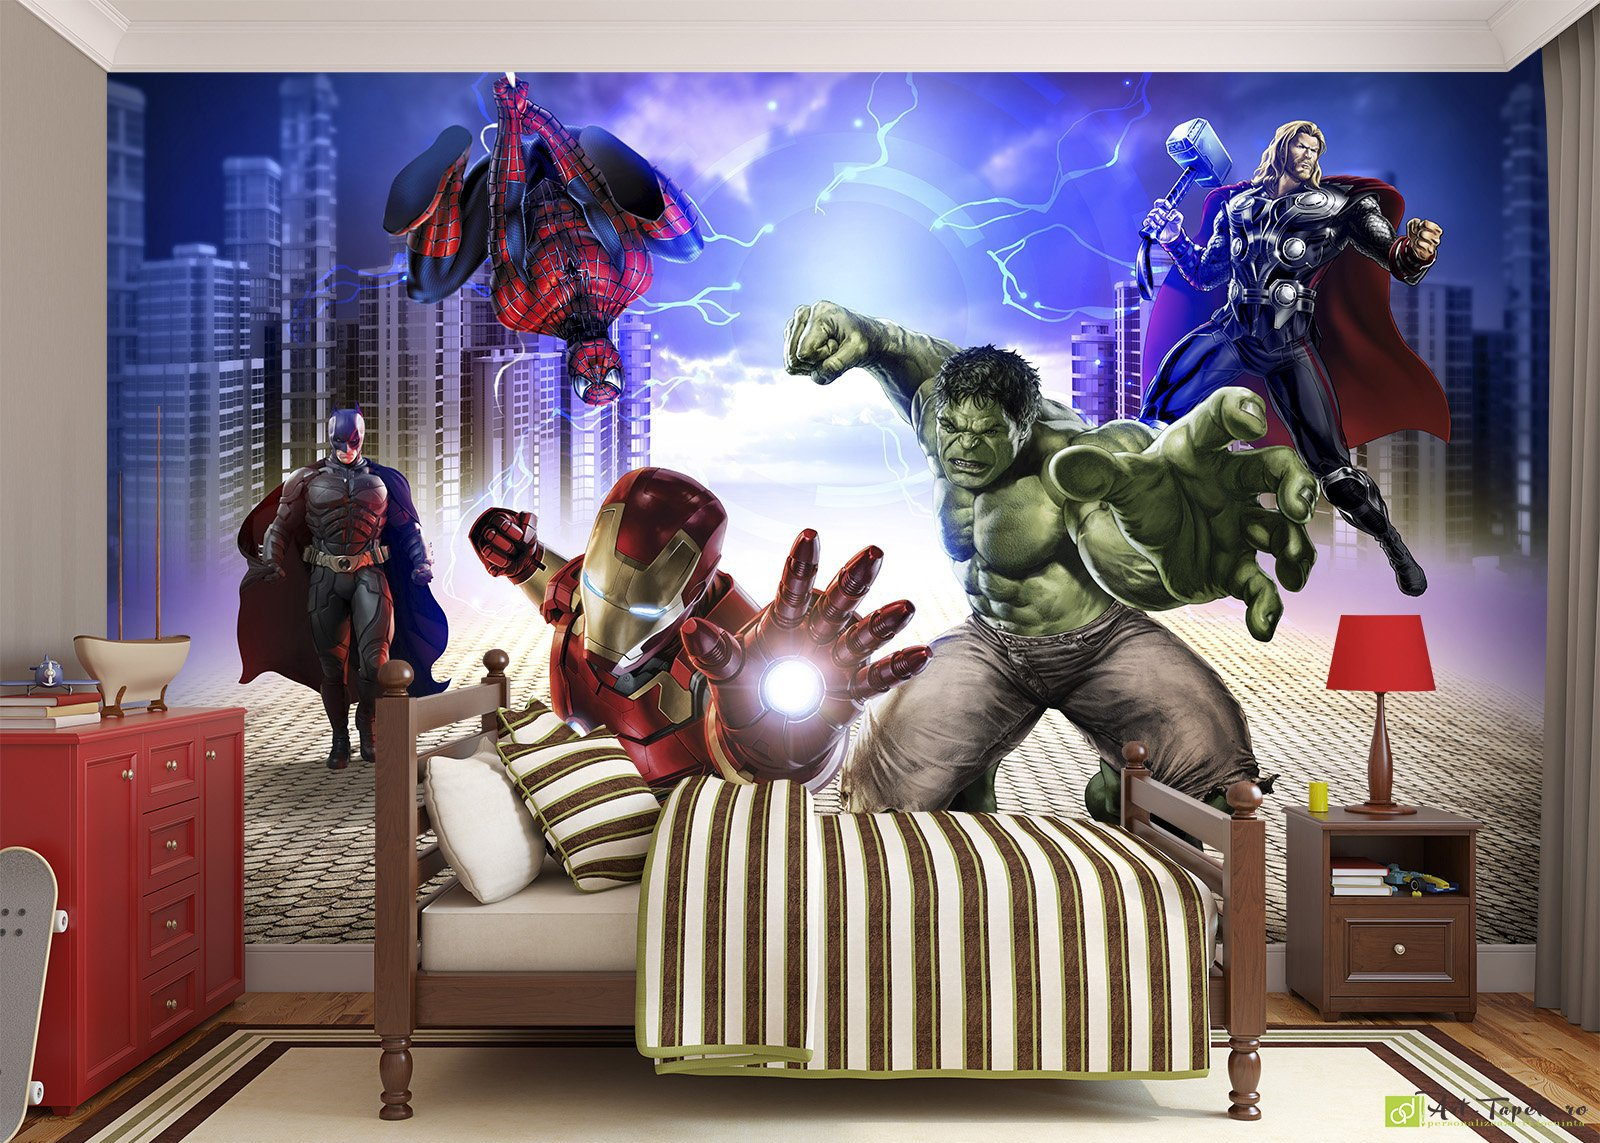 Download Wallpaper Marvel Wall - 1497965796_1480260169_1477398840_35752194_xxl  Best Photo Reference_514854.jpg